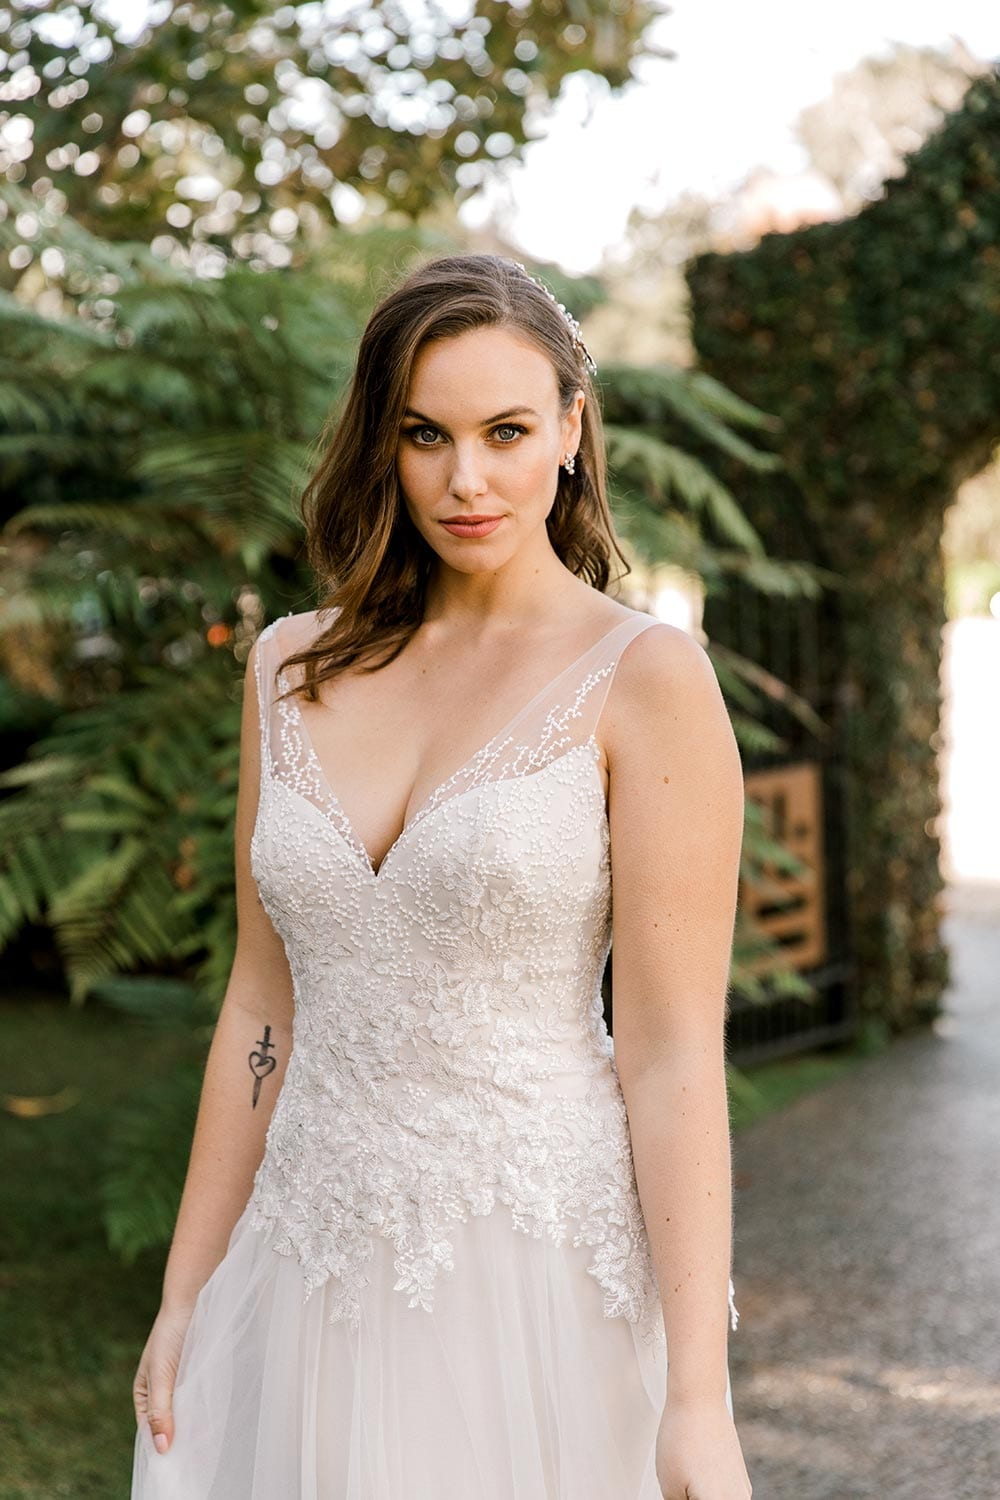 Hazel Wedding Dress from Vinka Design. Wedding dress with highly-sculptured bodice down to the hipline, at which point it gently flares into a beautiful and dreamy tulle skirt and train. Beautiful and delicate embroidery. Top half of dress with bodice detail.